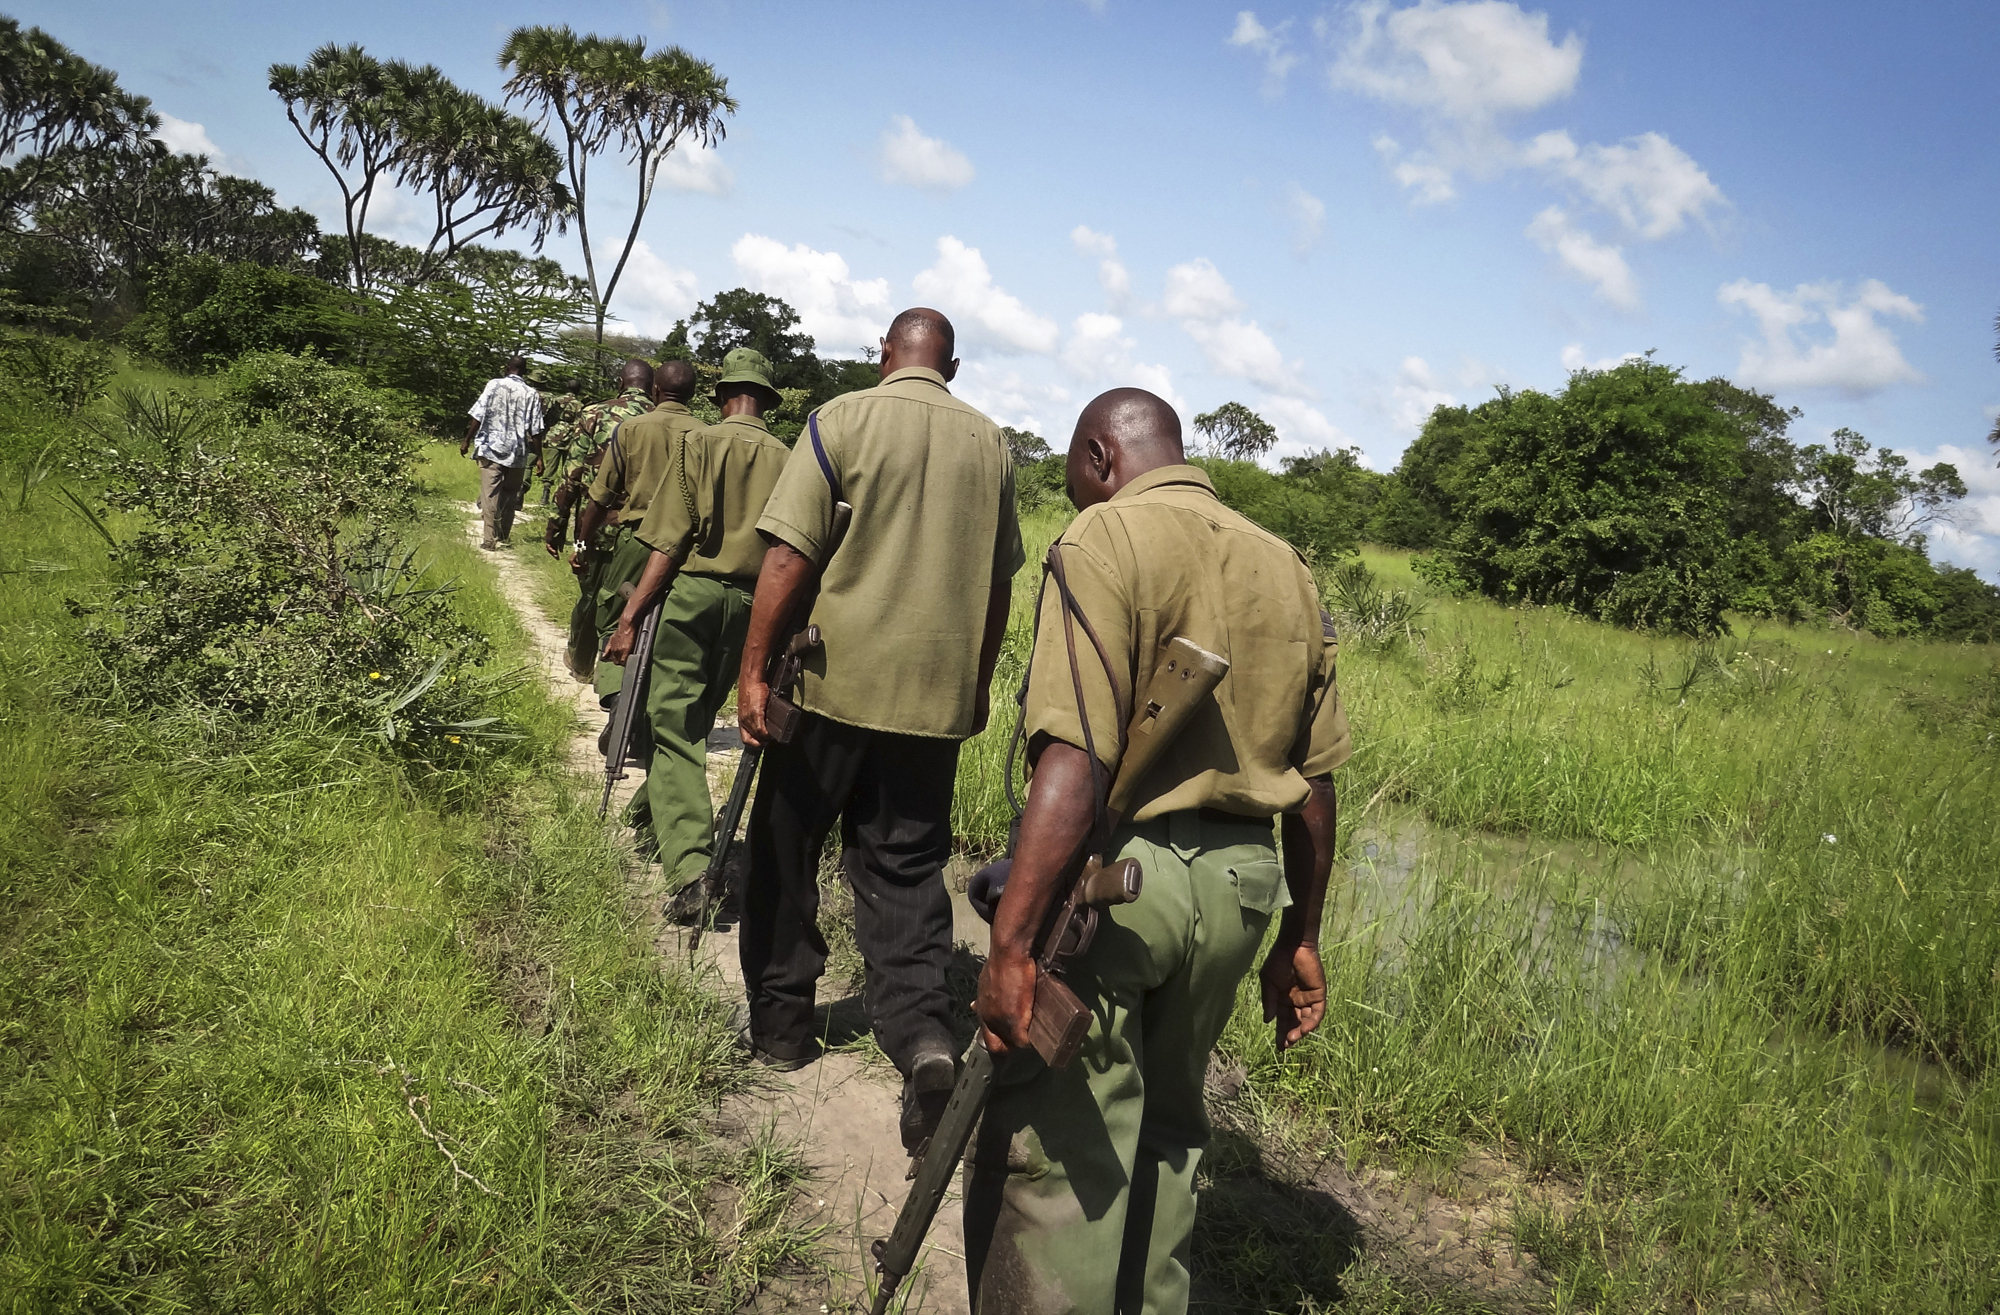 Armed members of the Kenyan security forces march in single file along narrow paths leading through the dense swamp and forest, searching for the attackers, in the remote village of Kaisari, near Mpeketoni, about 60 miles from the Somali border on the coast of Kenya, June 17, 2014.